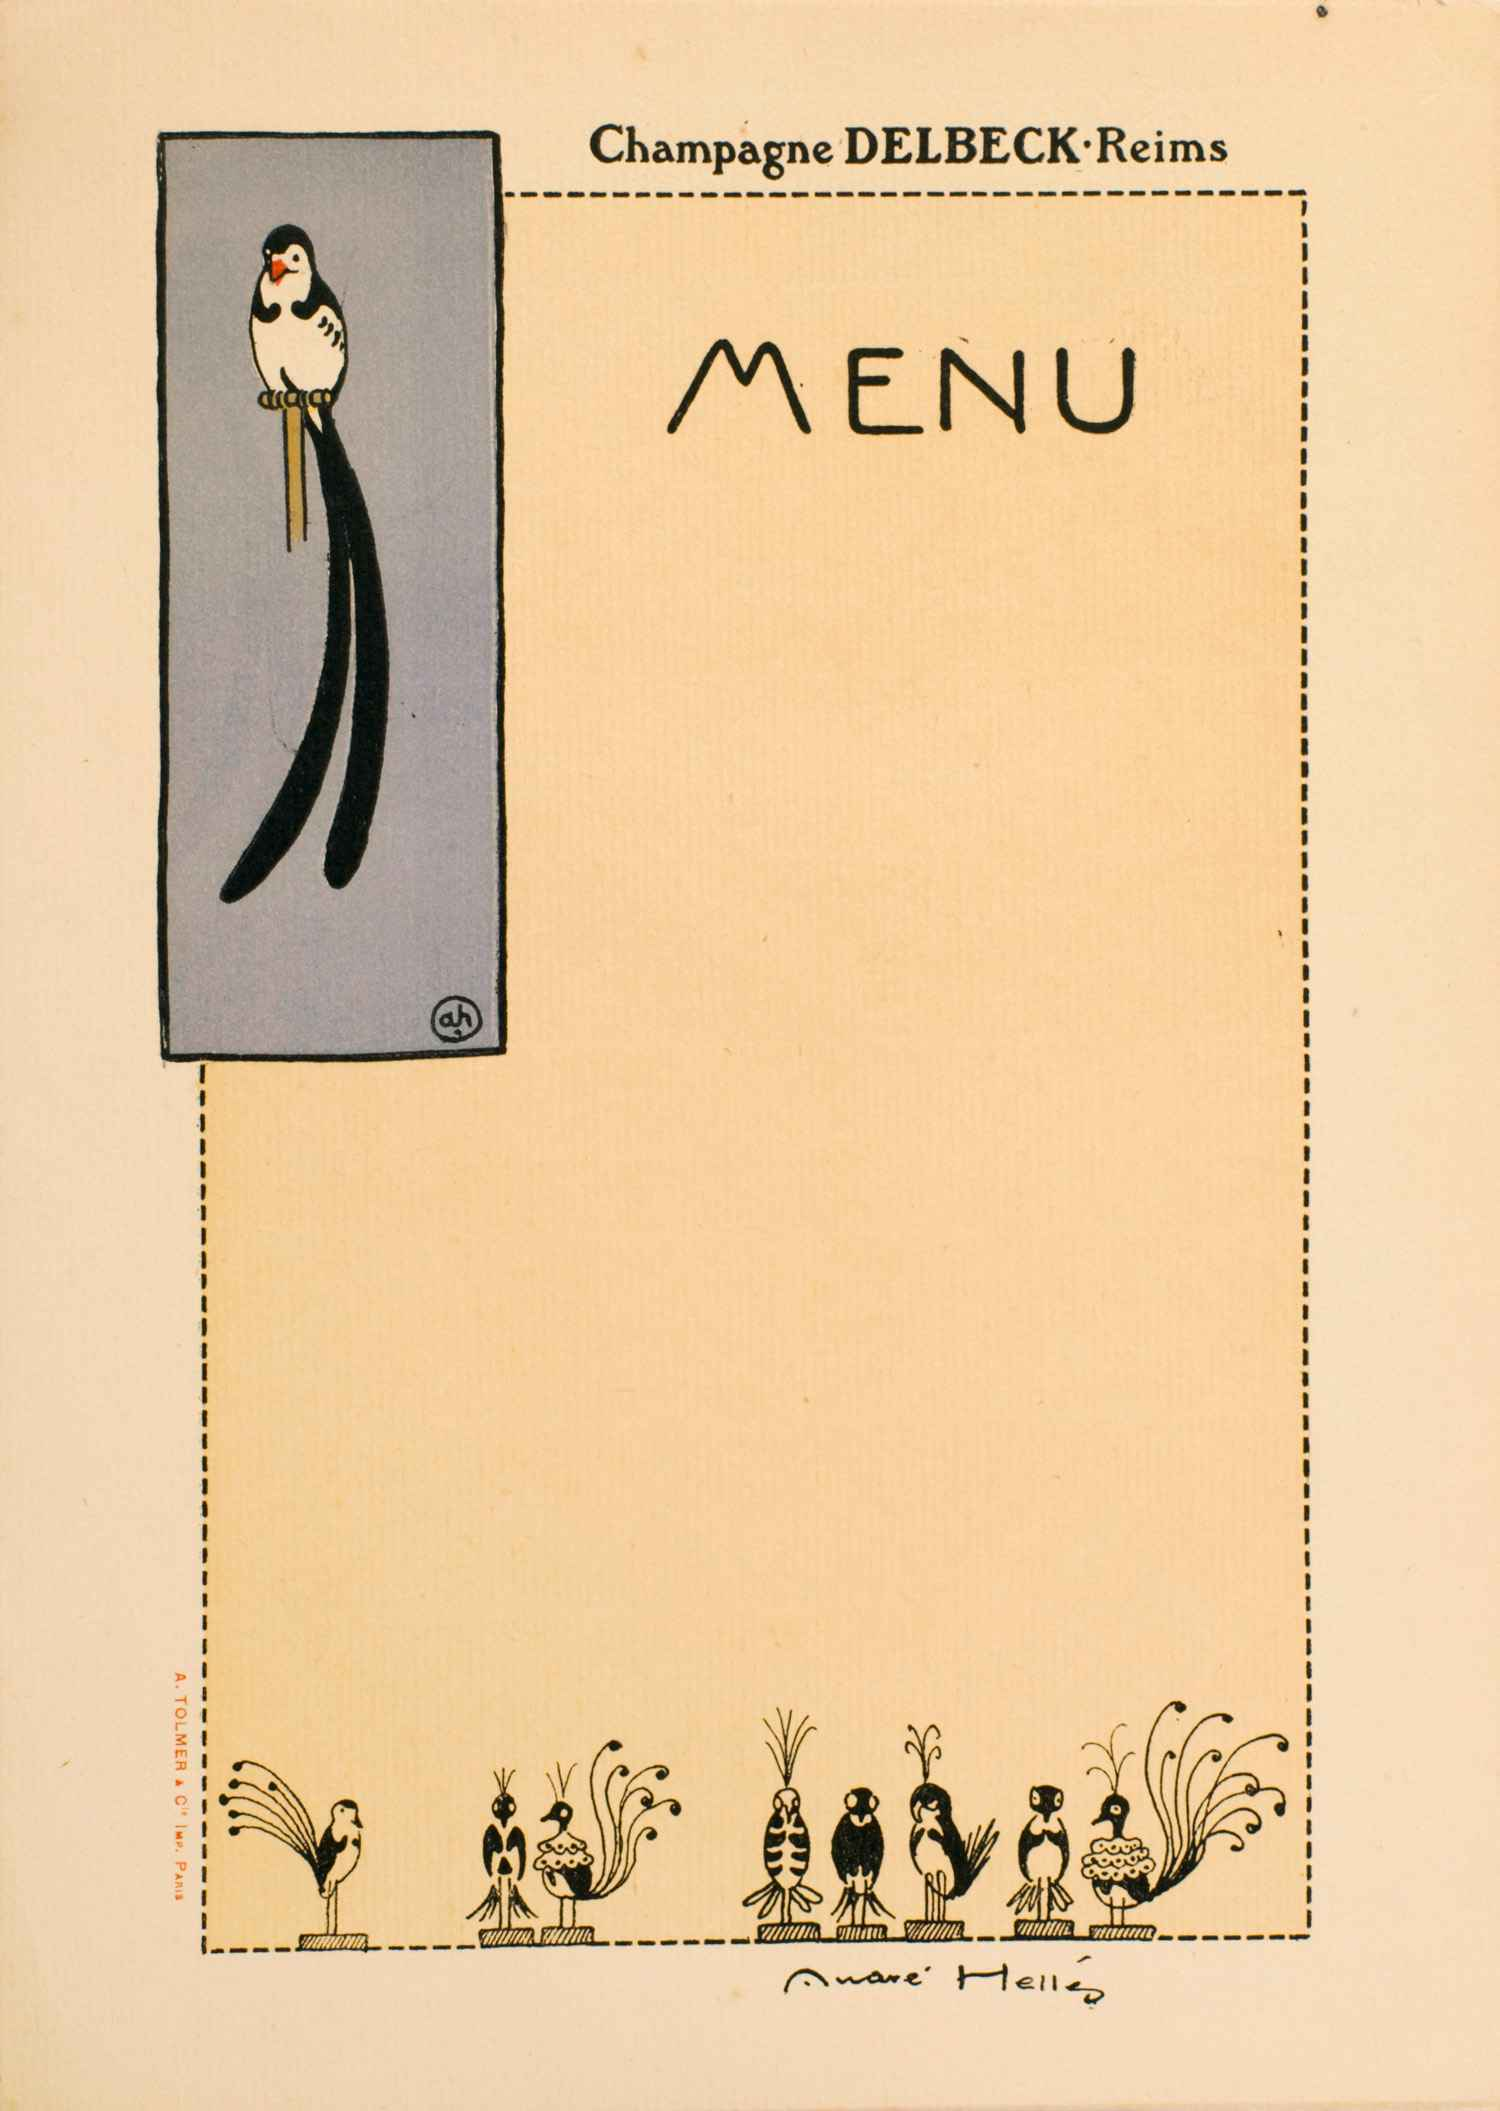 Menu 1 | André Hellé | Menu Illustré